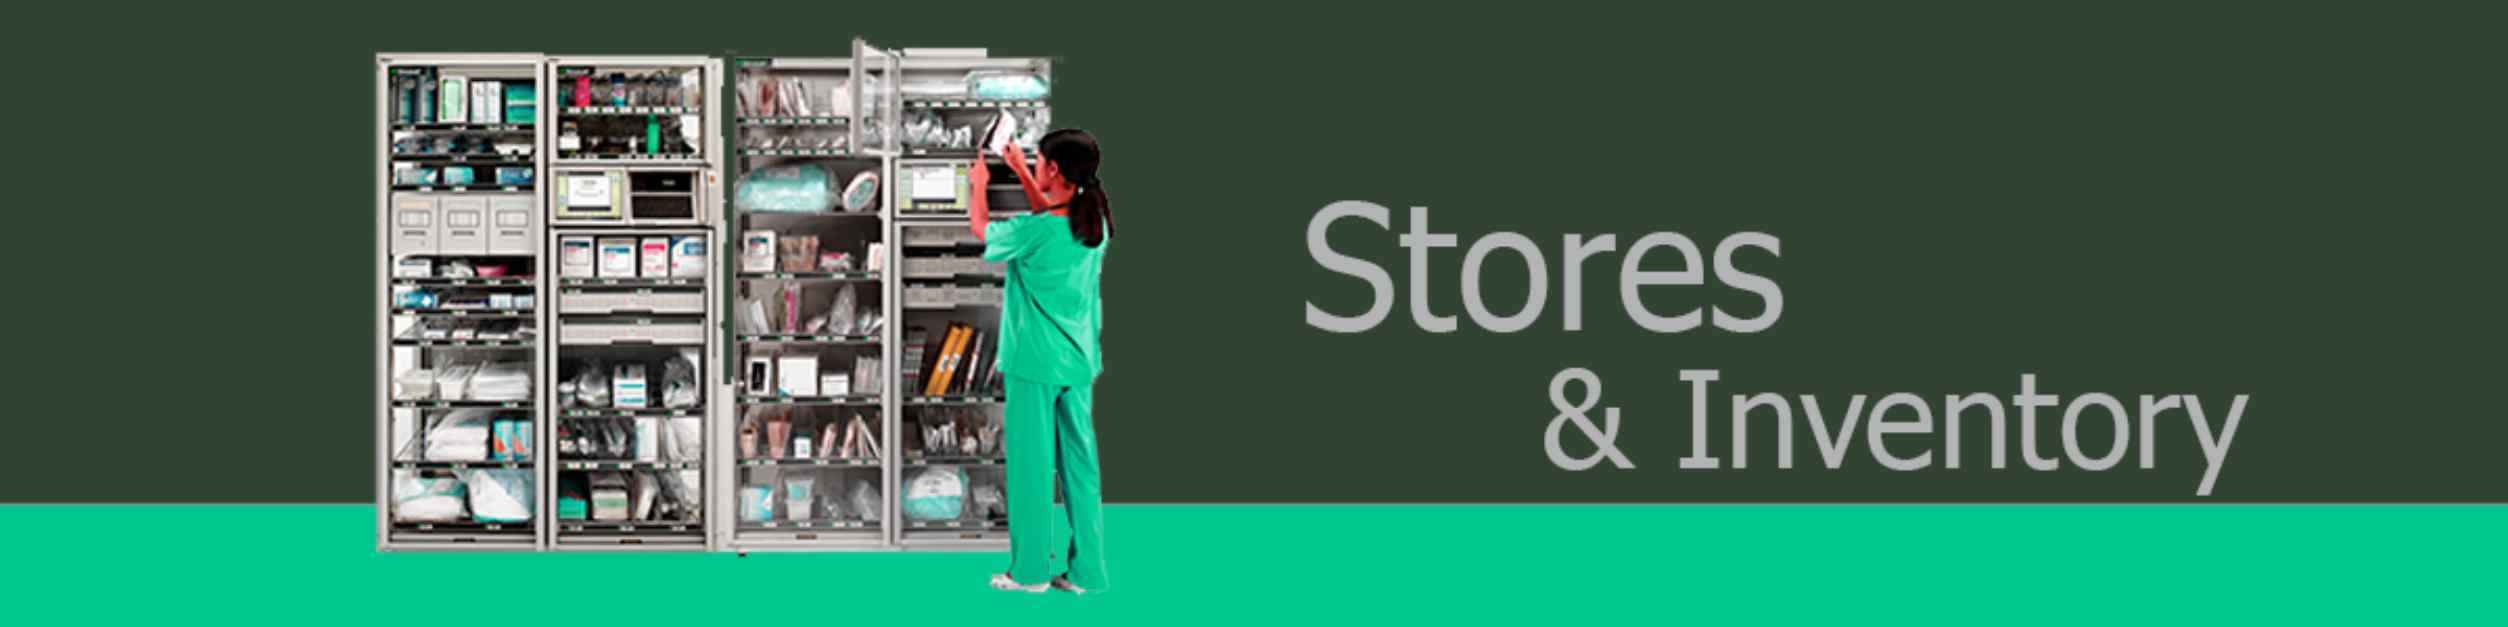 Stores & Inventory